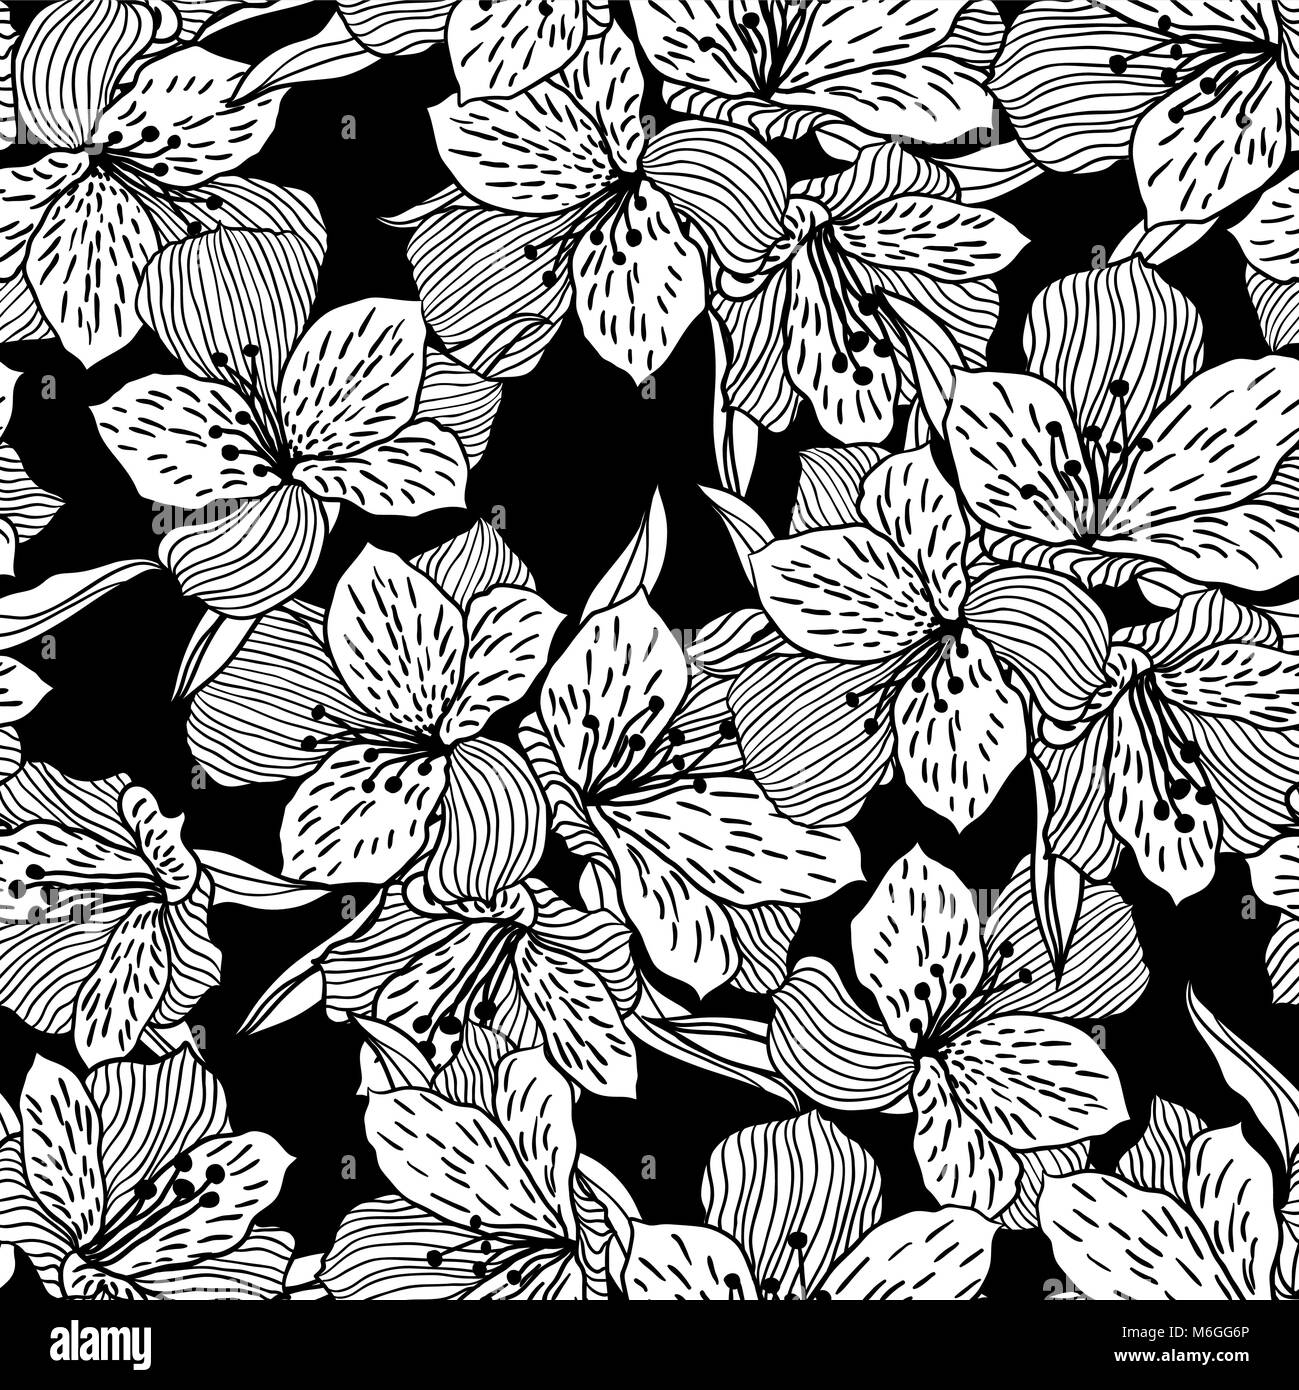 Abstract black seamless flower pattern with orchid - Stock Image